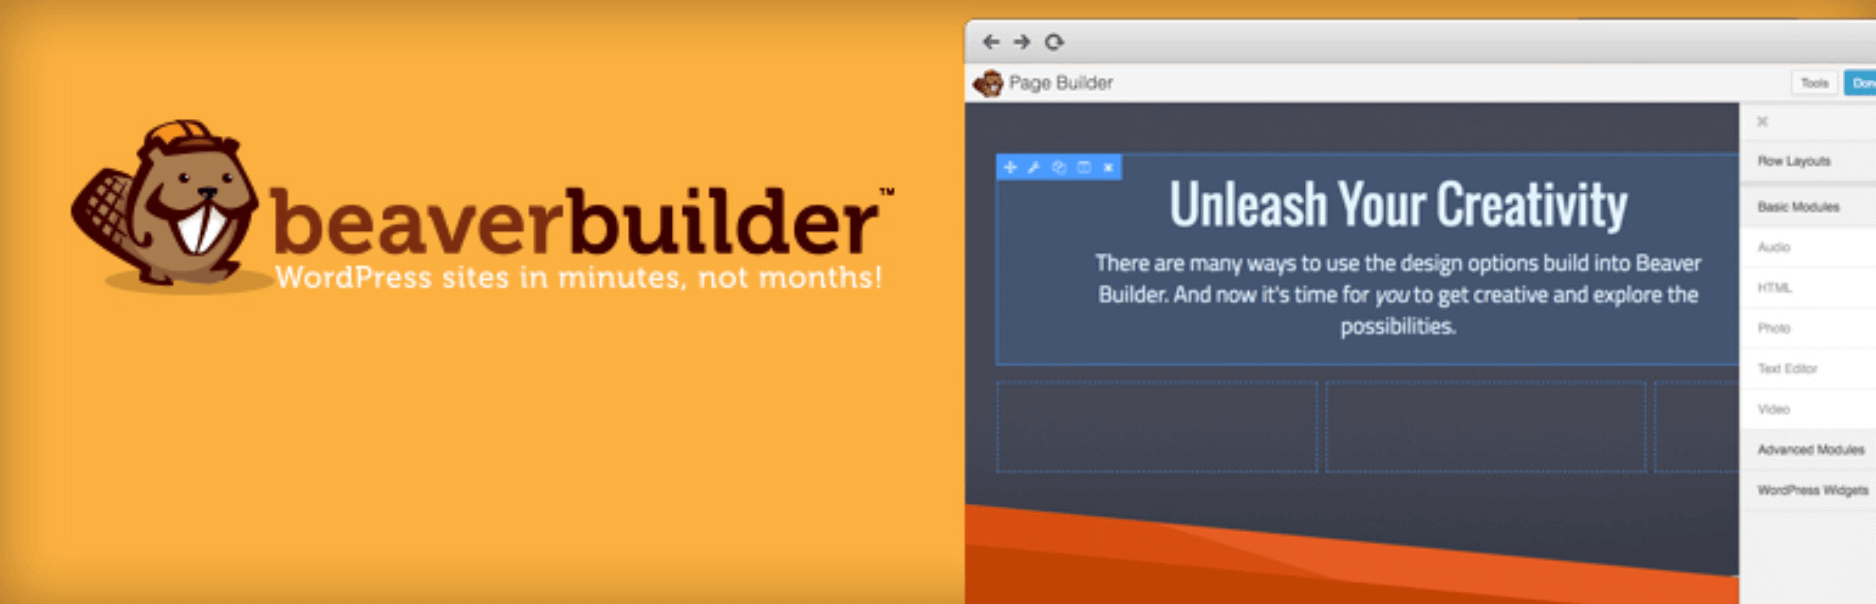 WordPress Page Builder - Beaver Builder